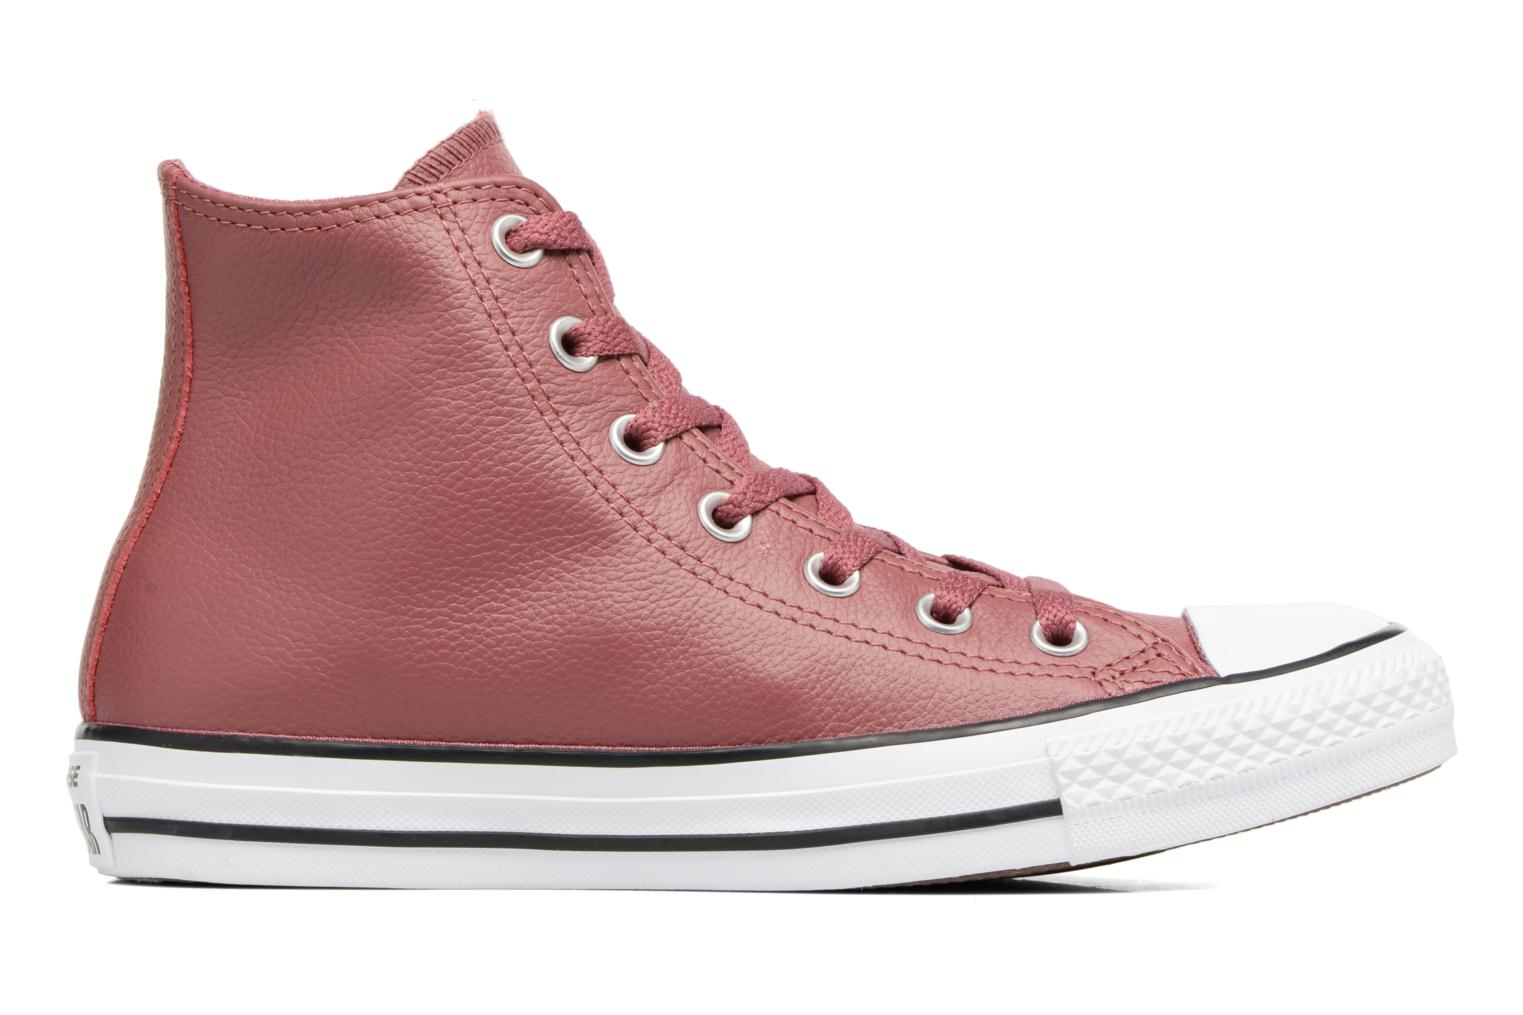 Baskets Converse Chuck Taylor All Star Tumbled Leather Hi Bordeaux vue derrière